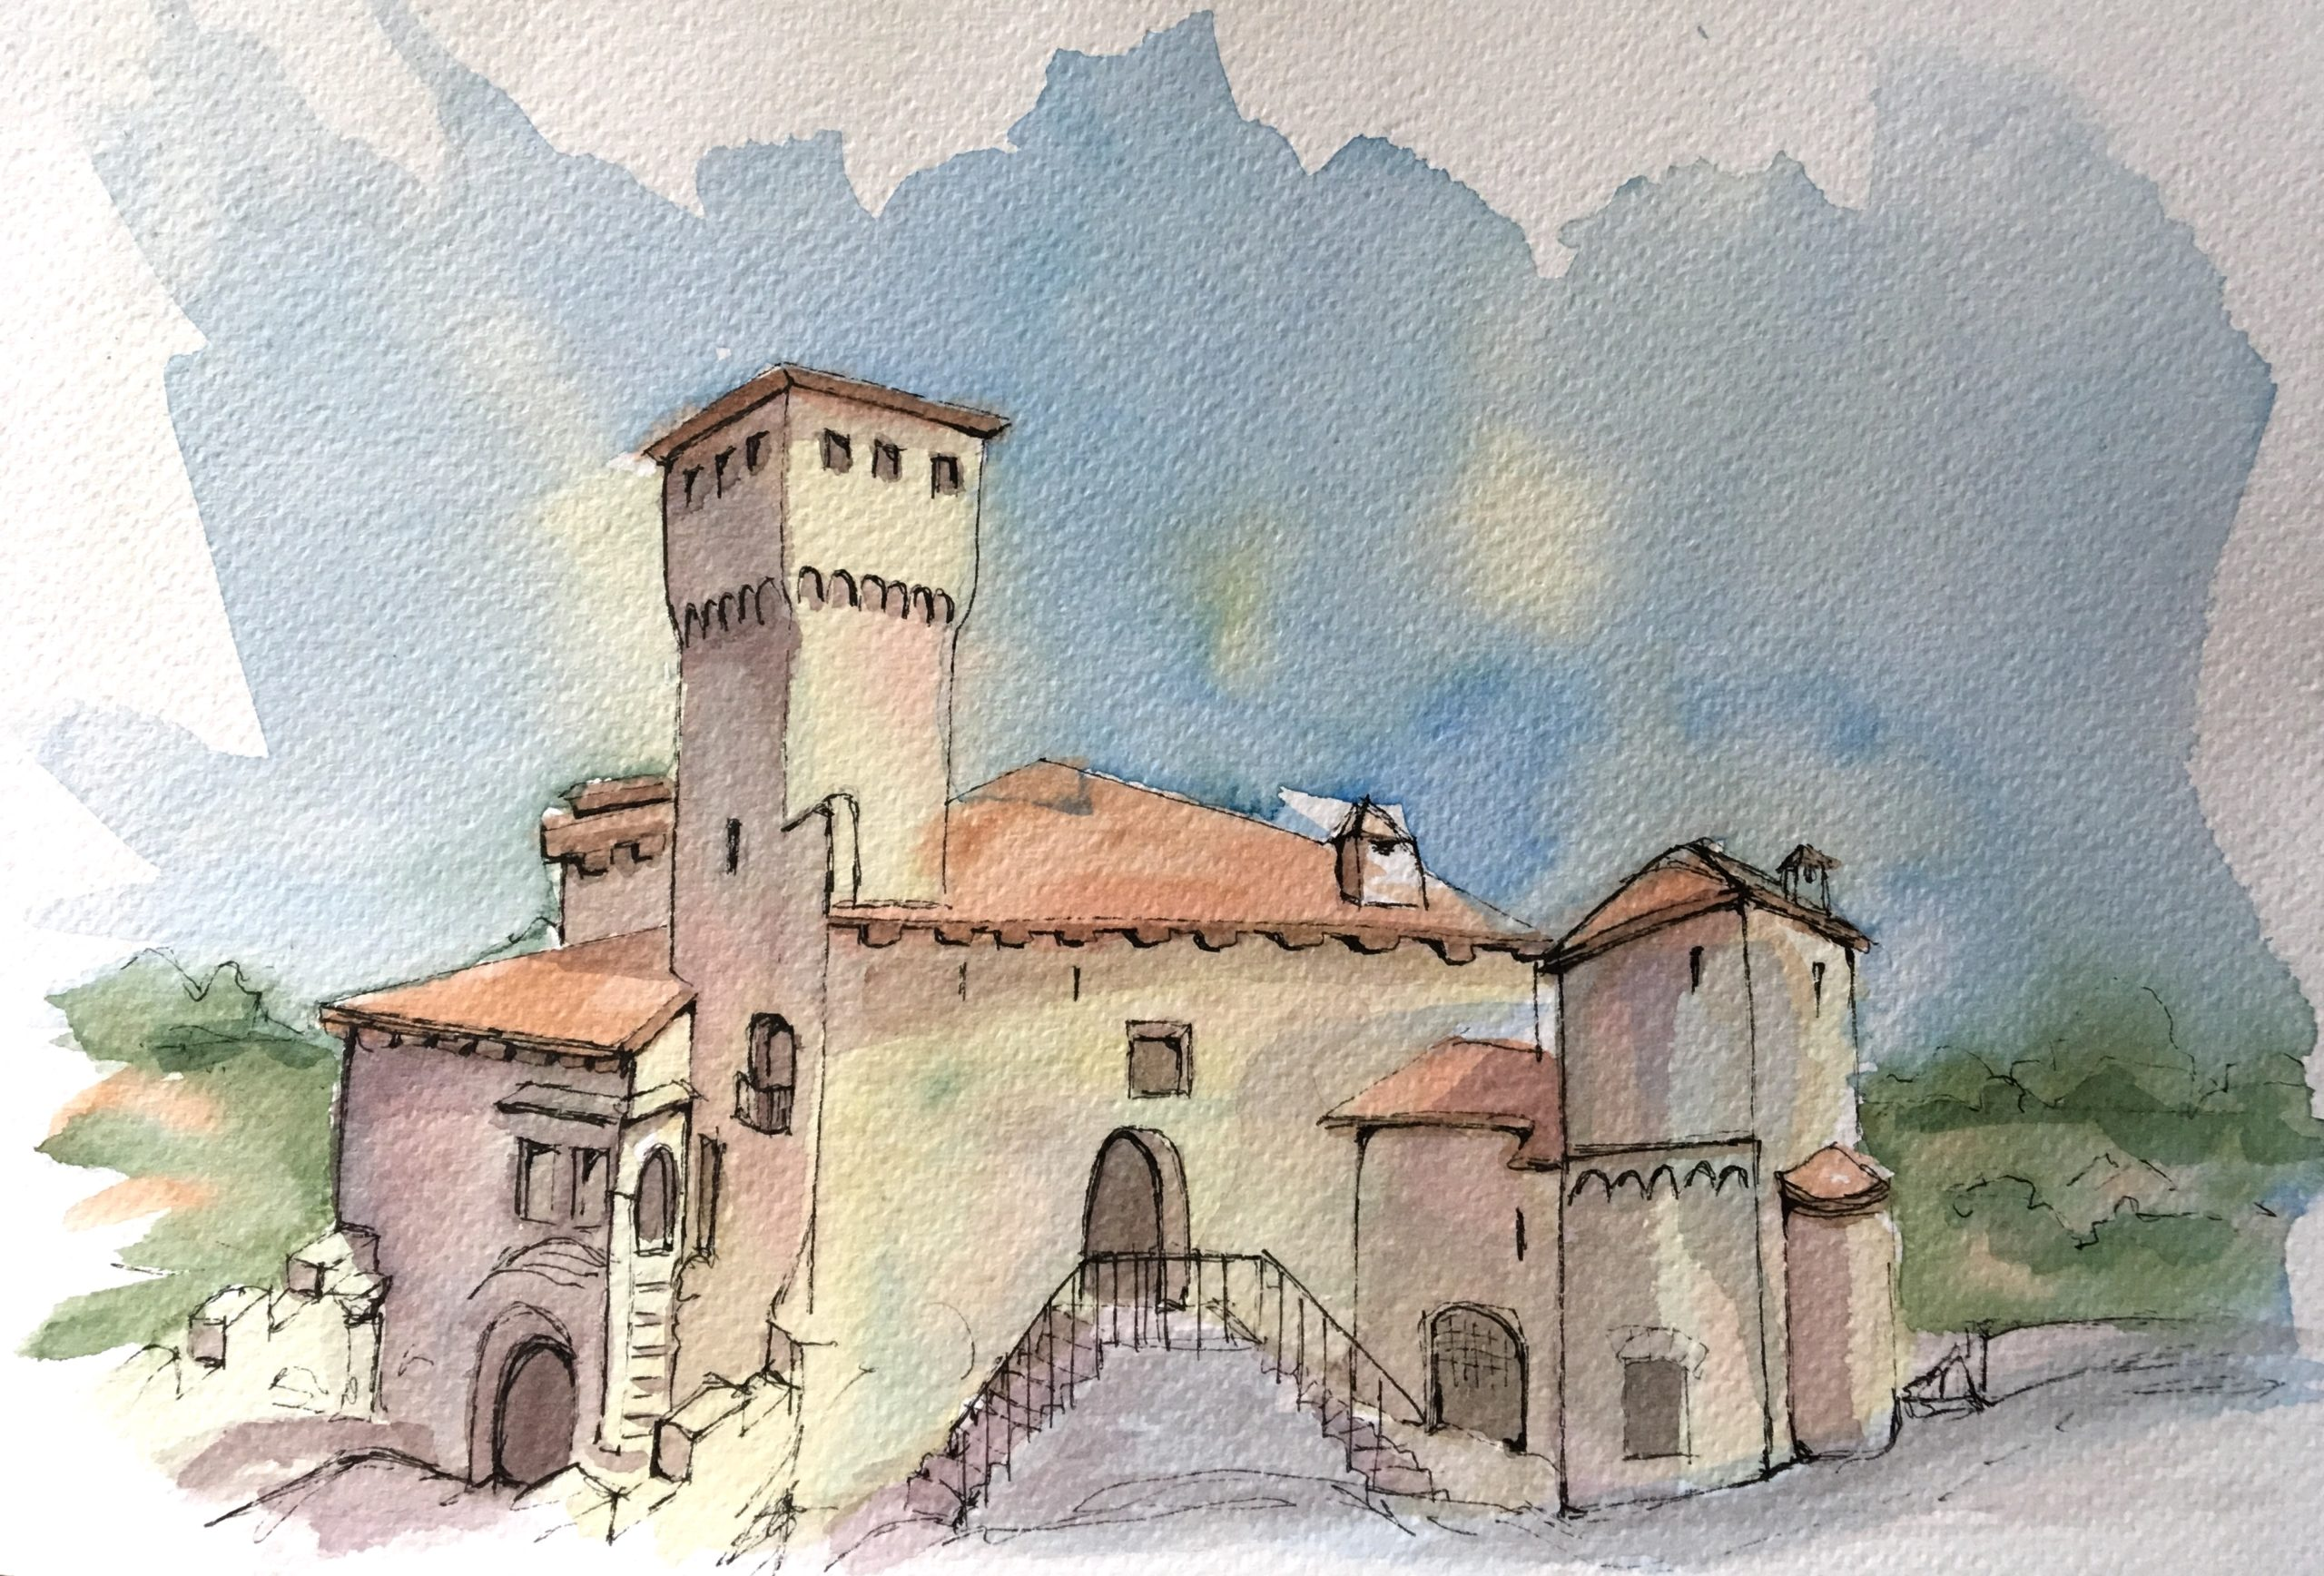 Painting of the medieval castle of Artegna